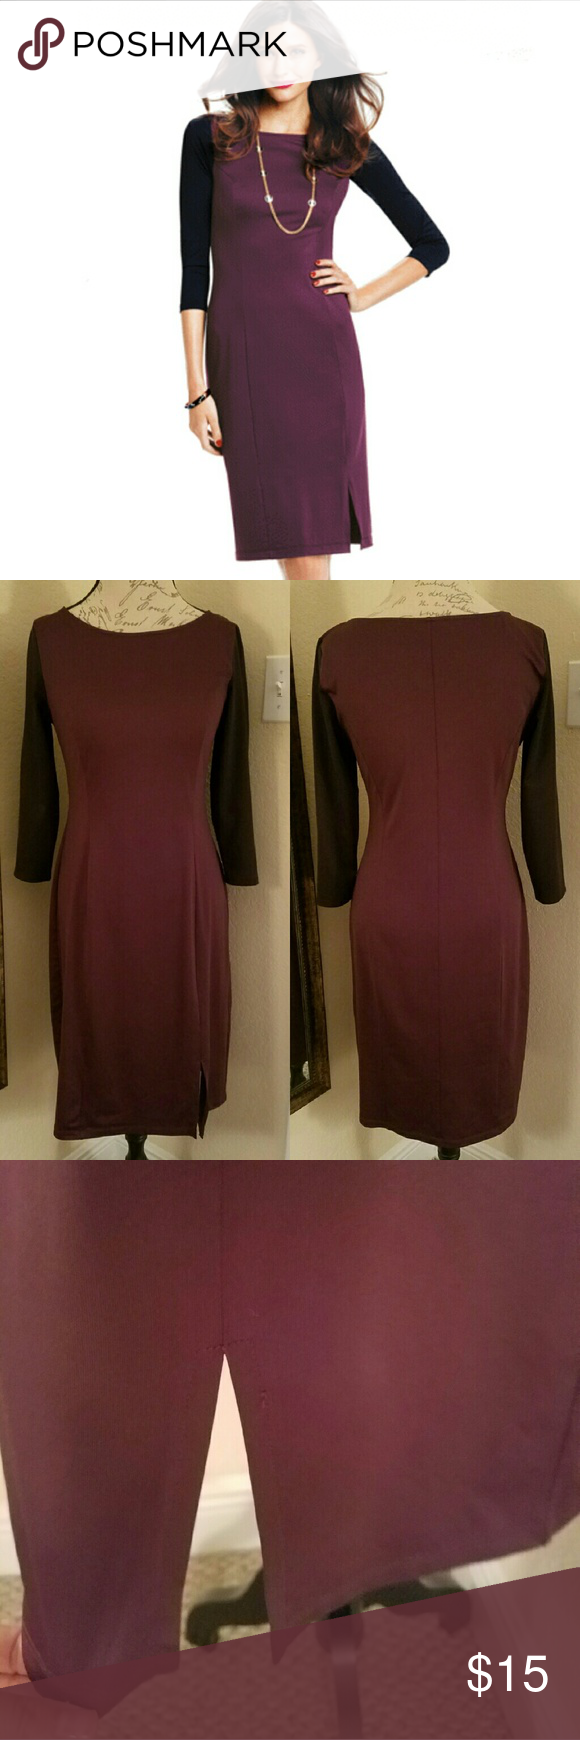 Purple and black dress Gently used/like new conditions perfect for any occasion. Avon Dresses Midi